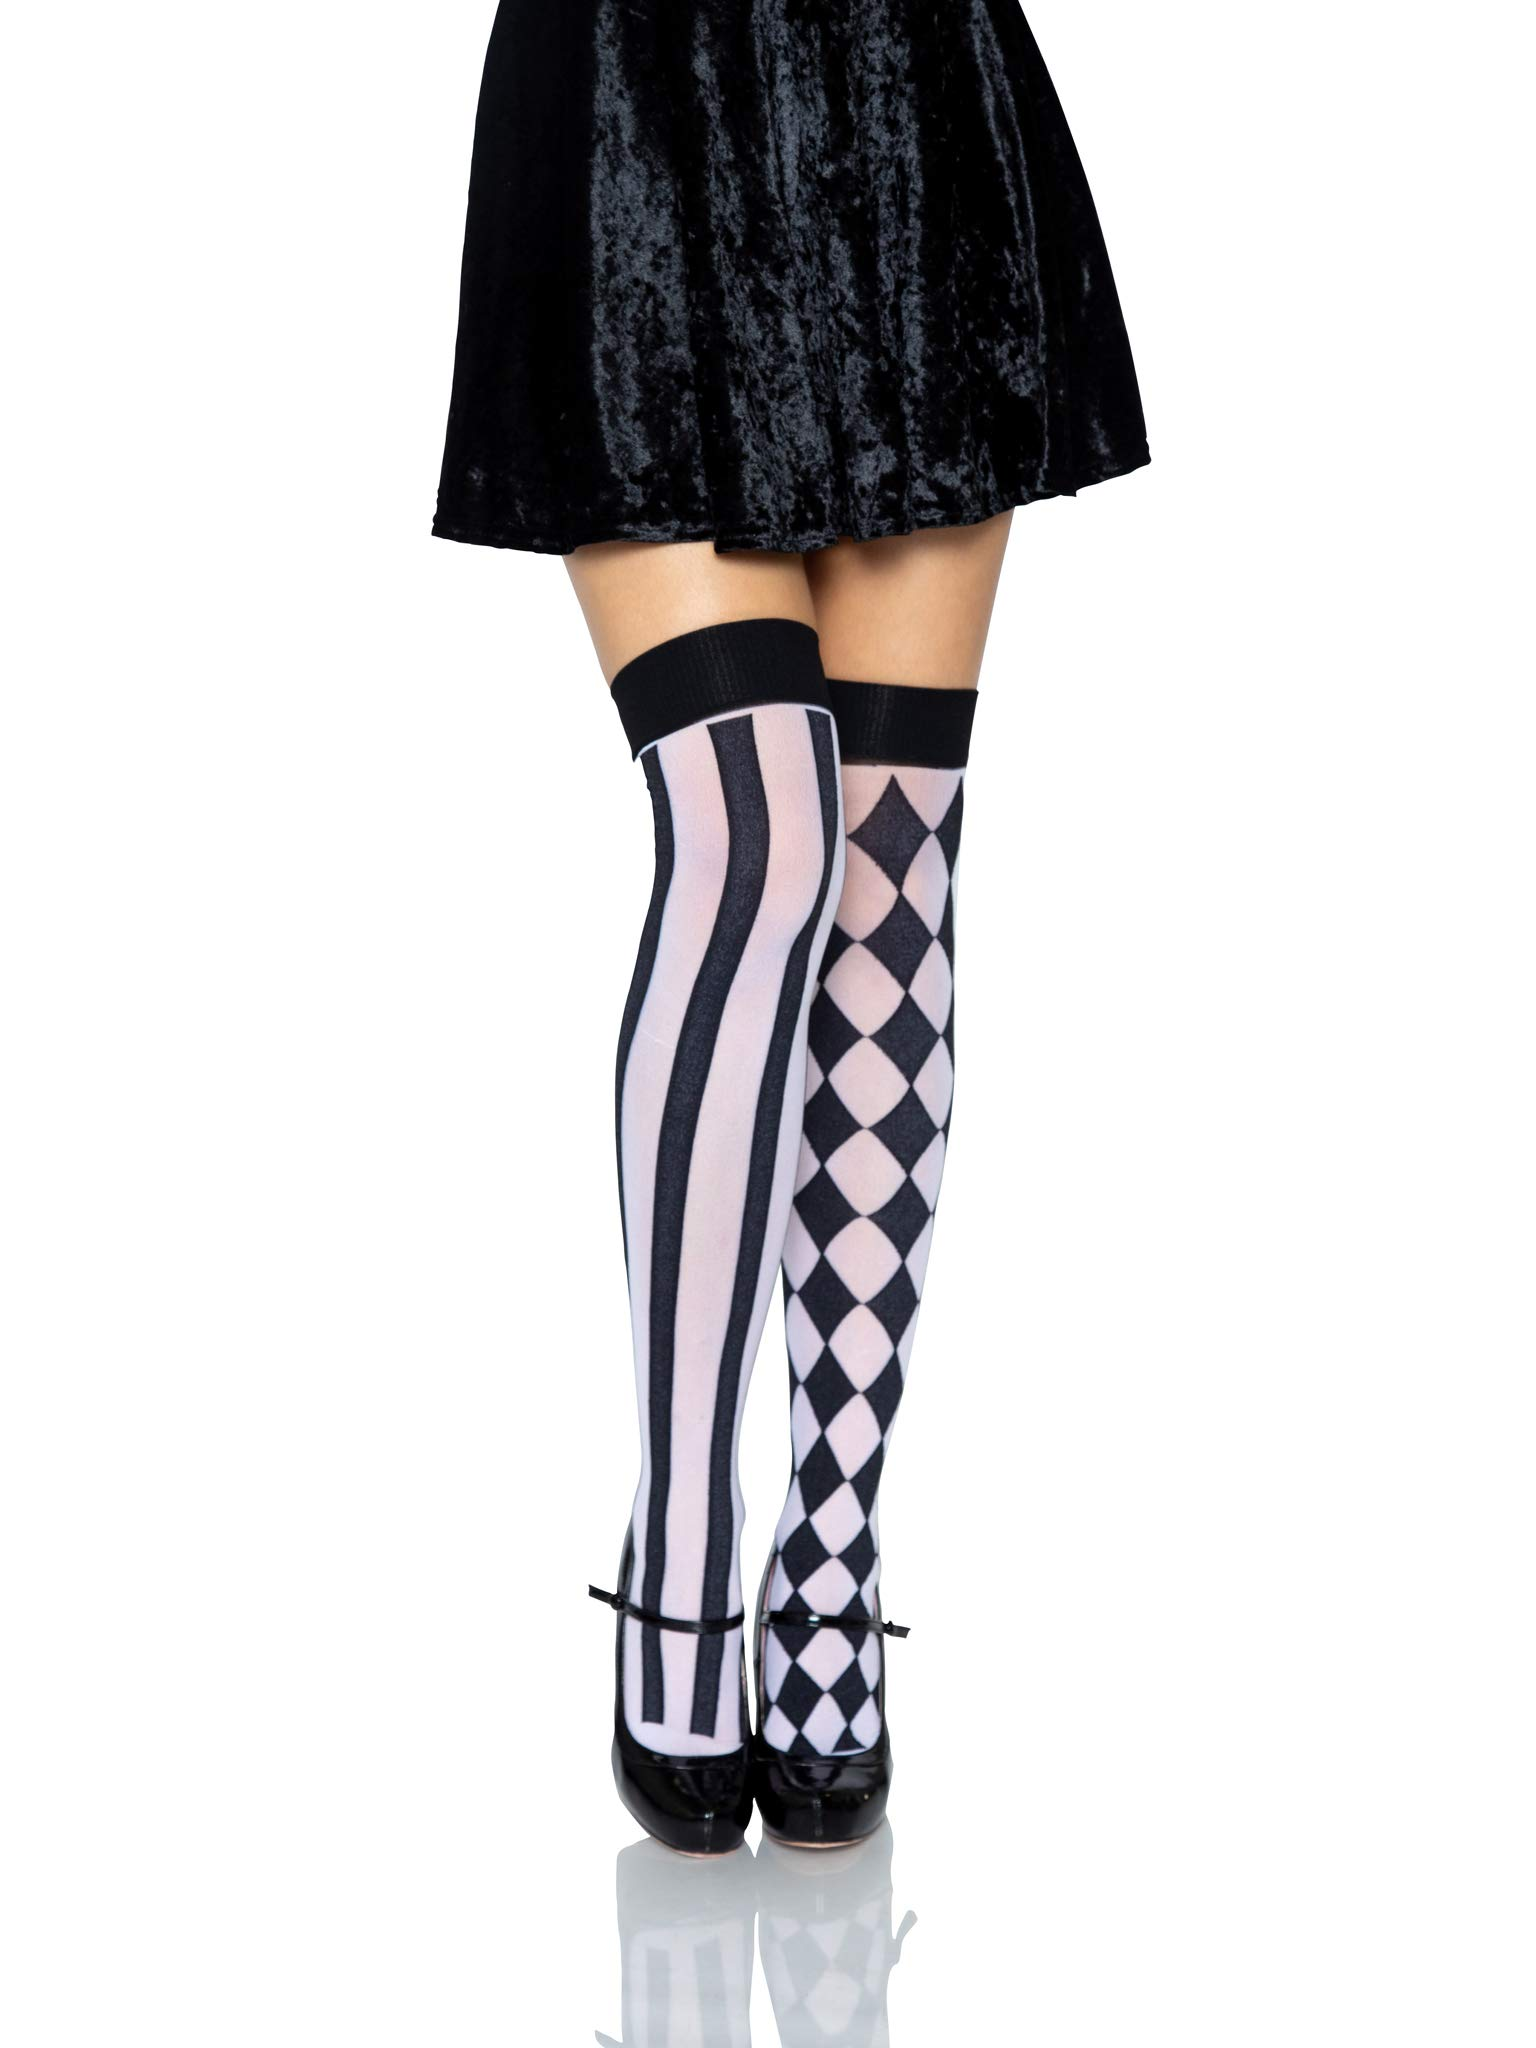 Women's Harlequin Thigh Highs, black/White, One Size